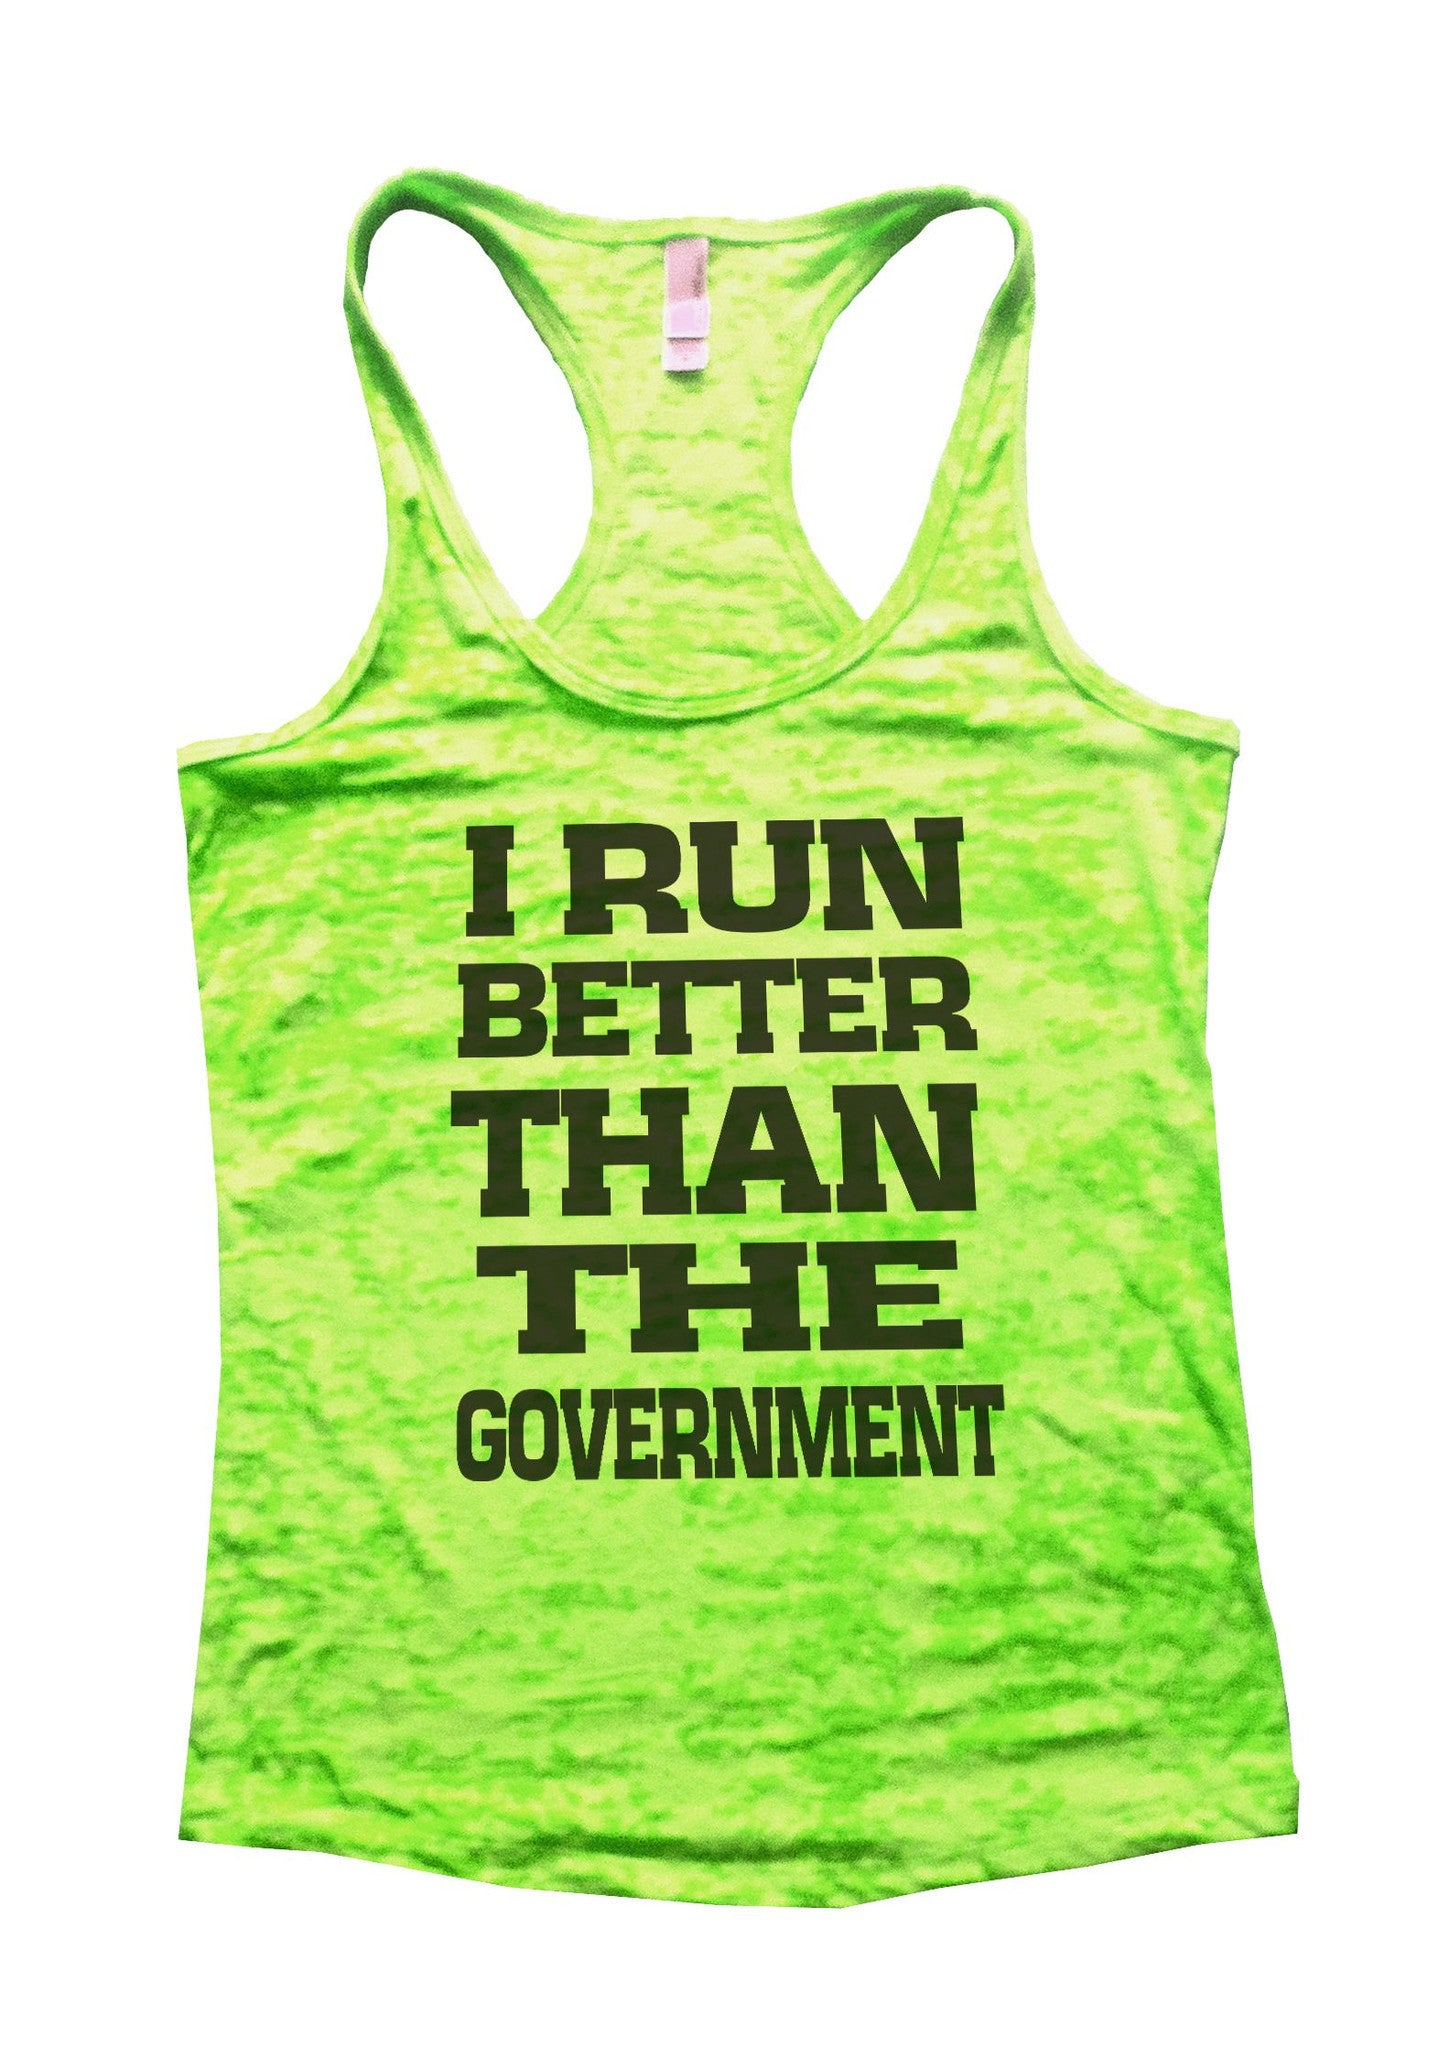 I Run Better Than The Government Burnout Tank Top By BurnoutTankTops.com - 763 - Funny Shirts Tank Tops Burnouts and Triblends  - 2